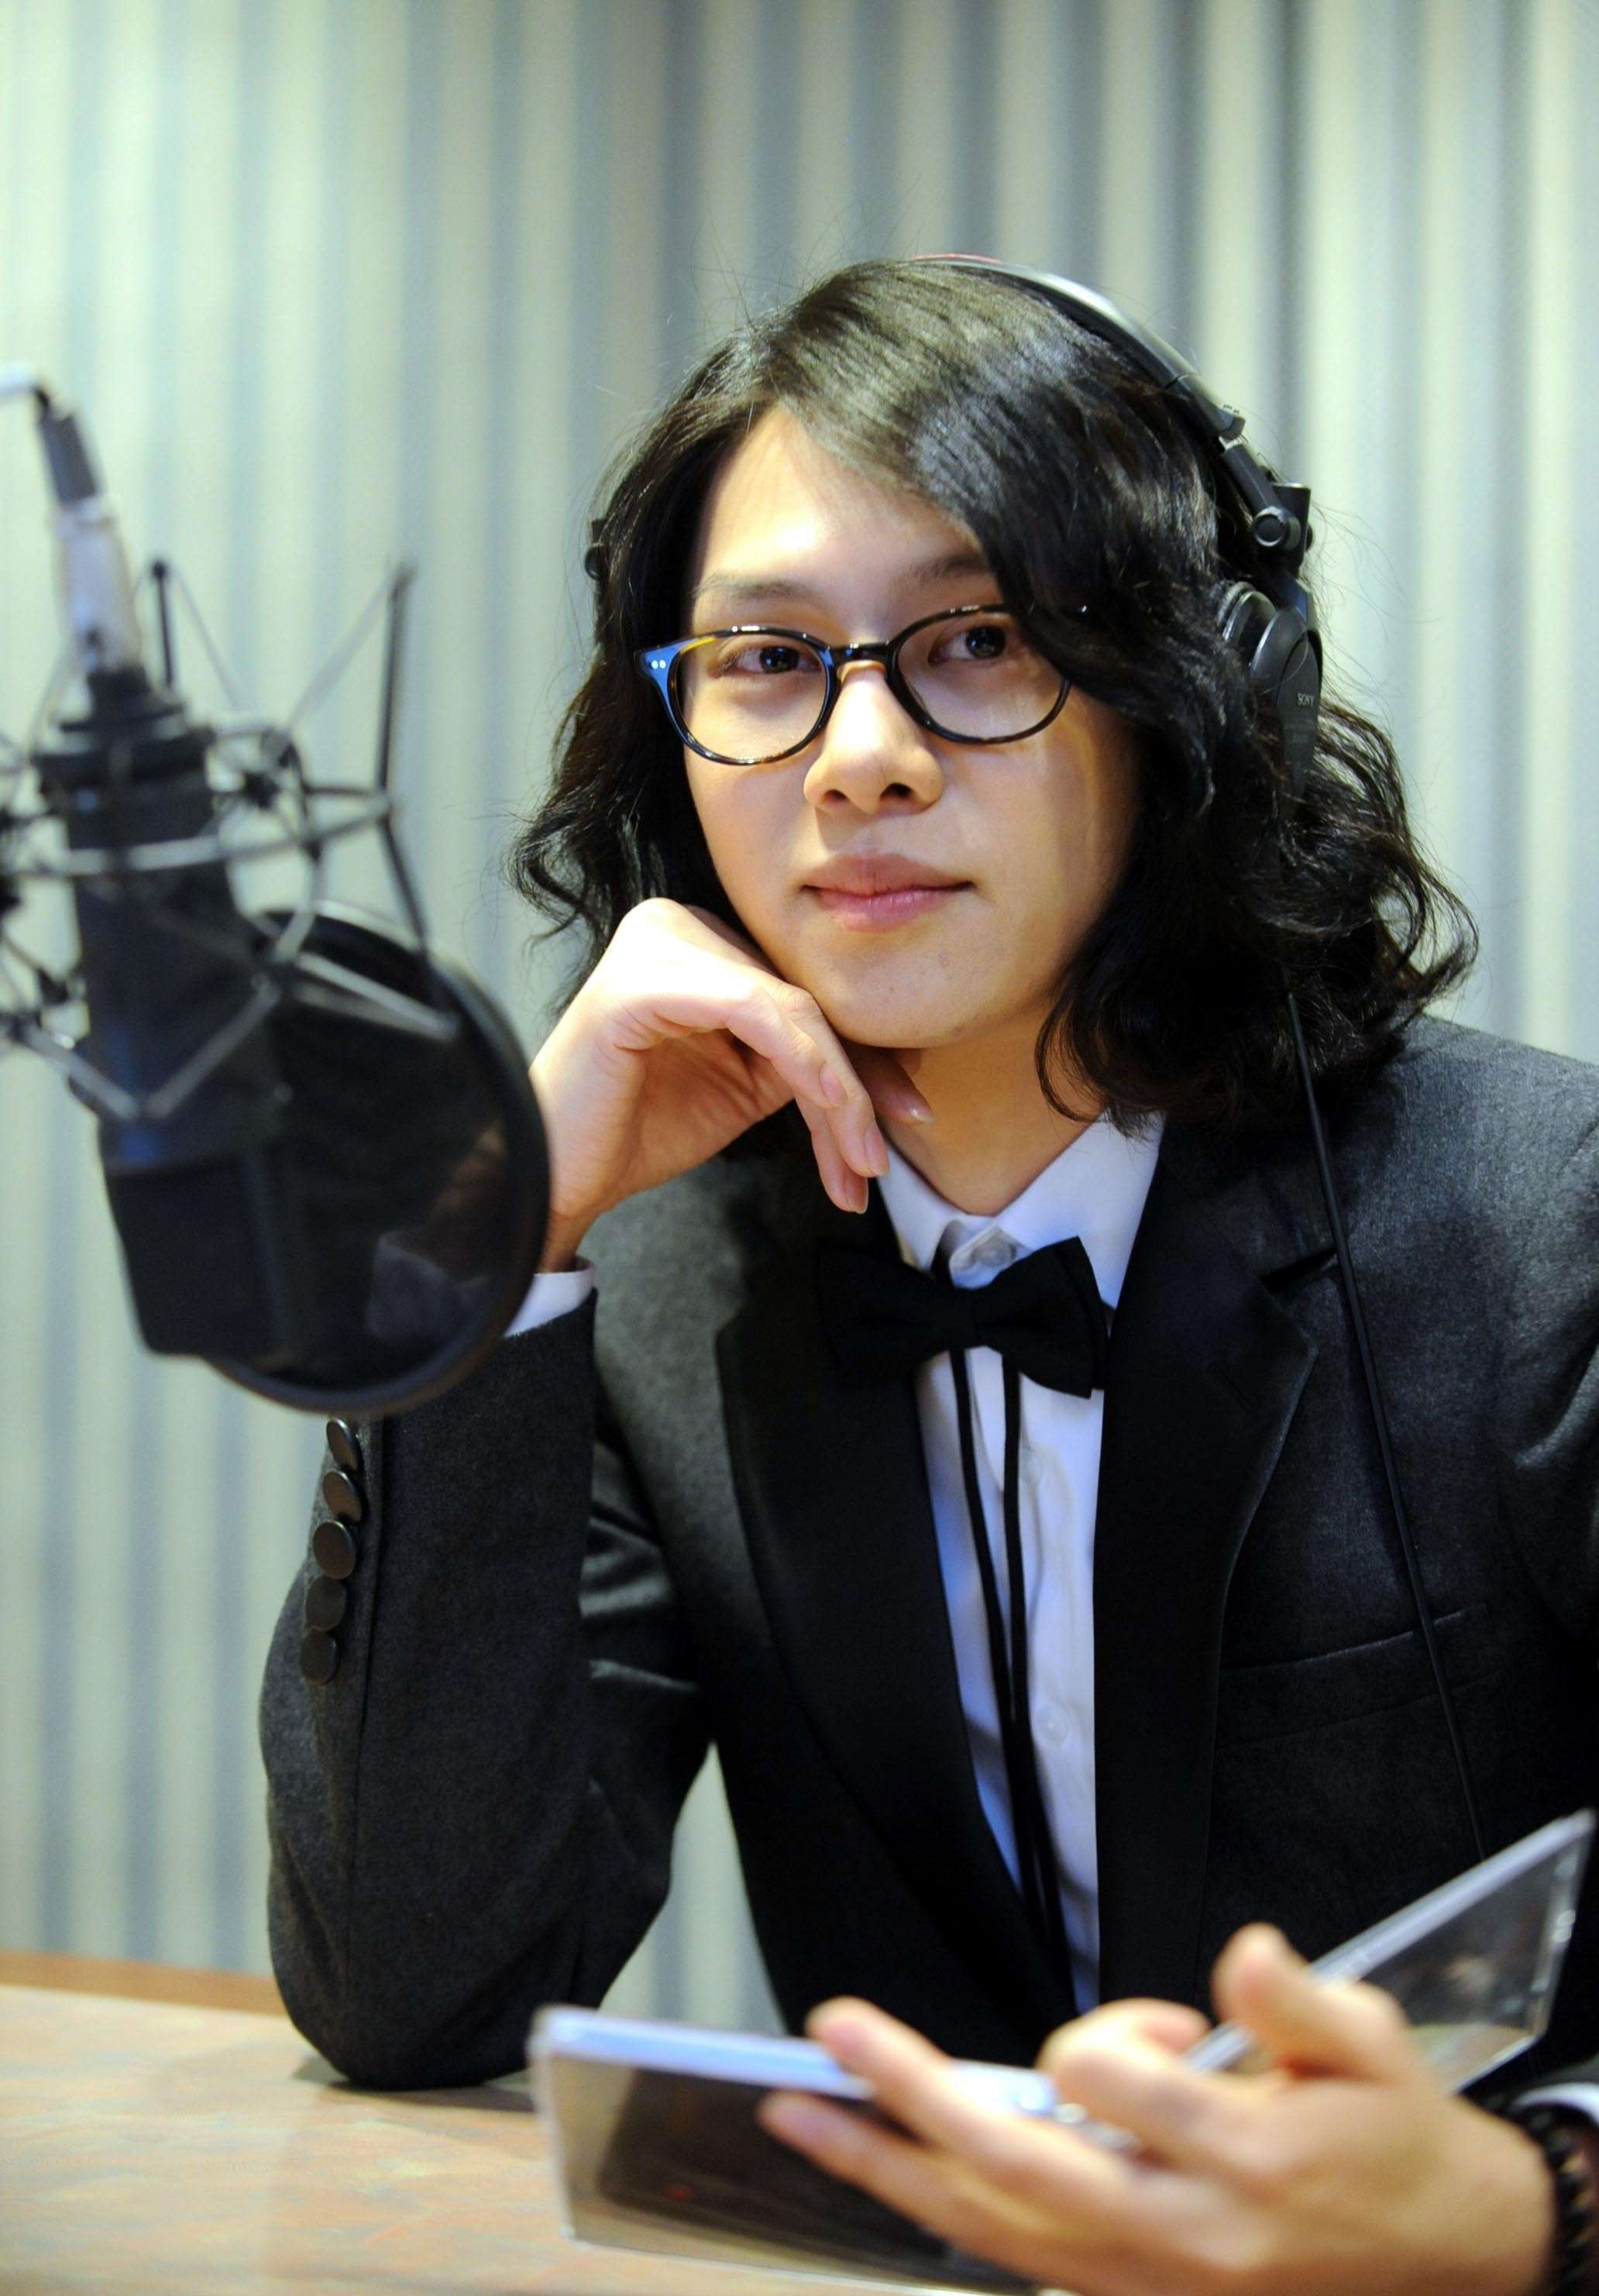 Sbs spring schedule – heechul will be youngstreet dj